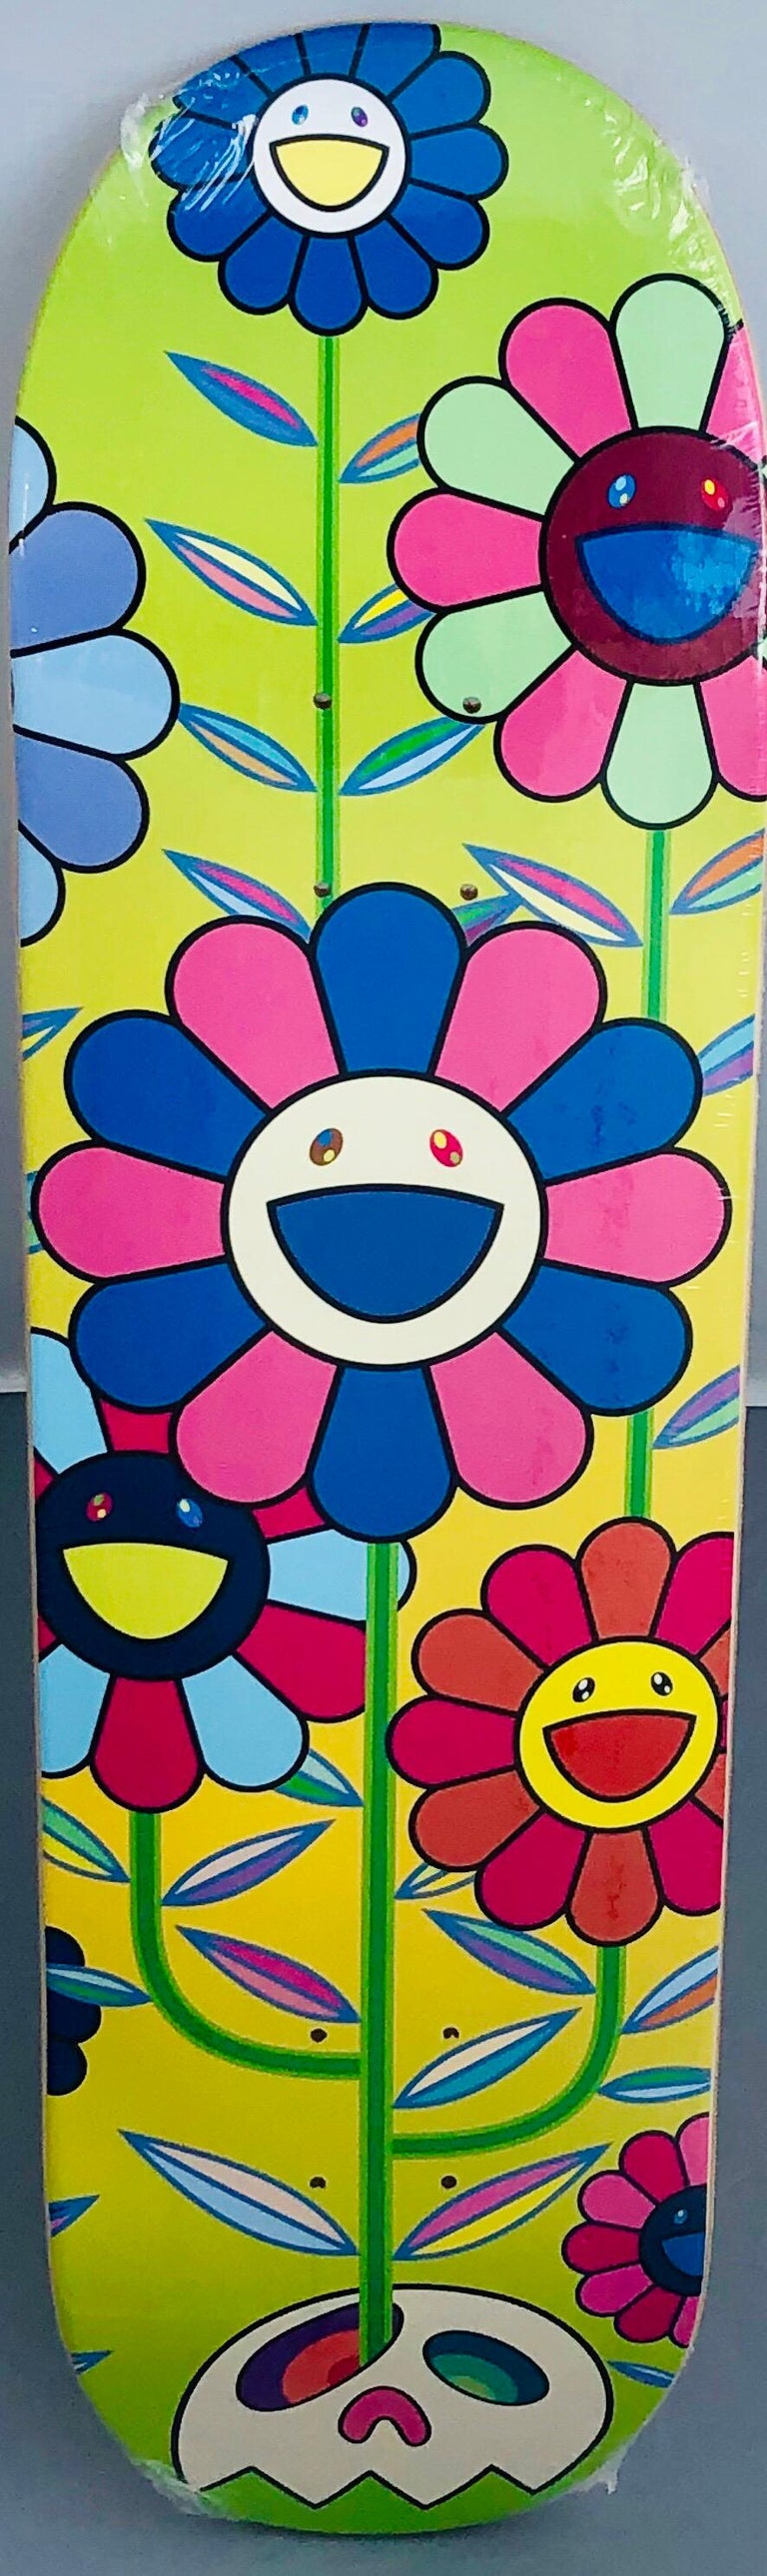 Takashi Murakami Flowers Skate Deck A vibrant piece of Takashi Murakami wall art produced as a completely sold out, limited series in 2019 in conjunction with Complexcon and Kaikai Kiki co. This deck is new in its original packaging. A brilliant